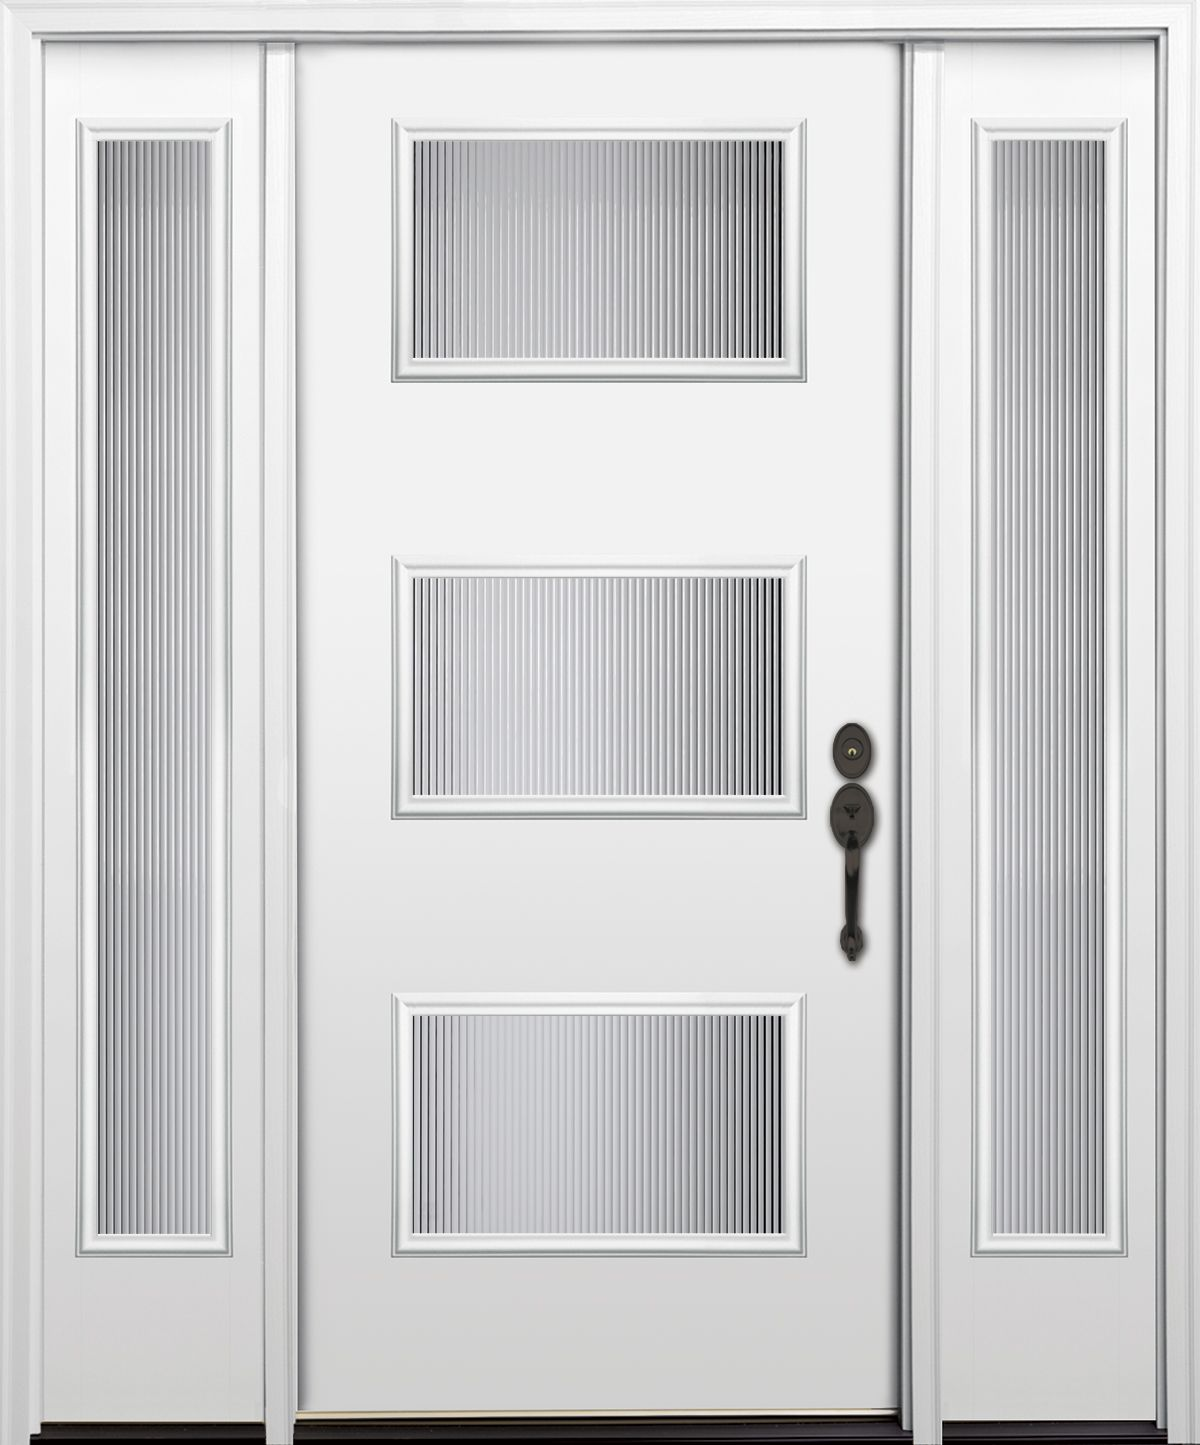 Contemporary black front door clopay energy star smooth contemporary black front door clopay energy star smooth fiberglass entry door with clarion frosted glass windows and sidelights optional nickel h eventelaan Image collections